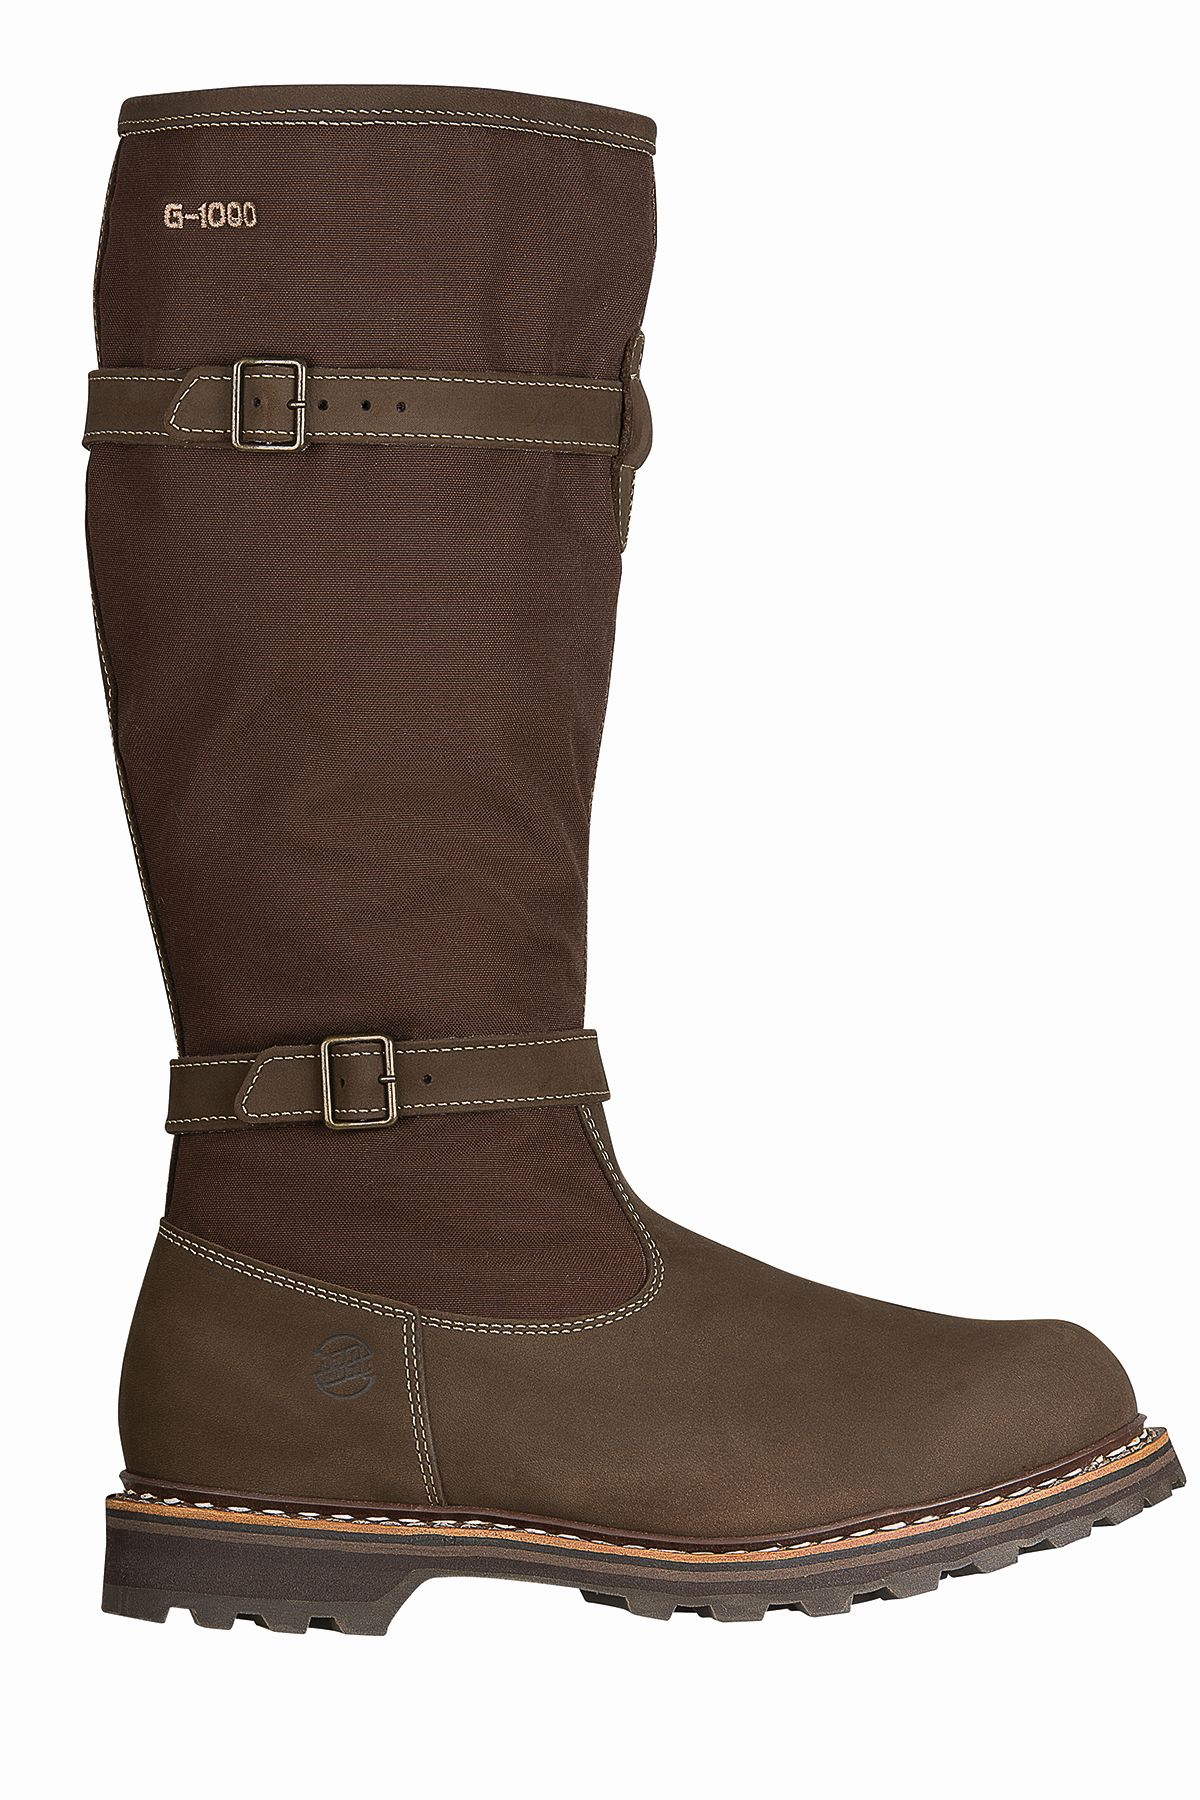 Hanwag Hjort Lady Brown-30